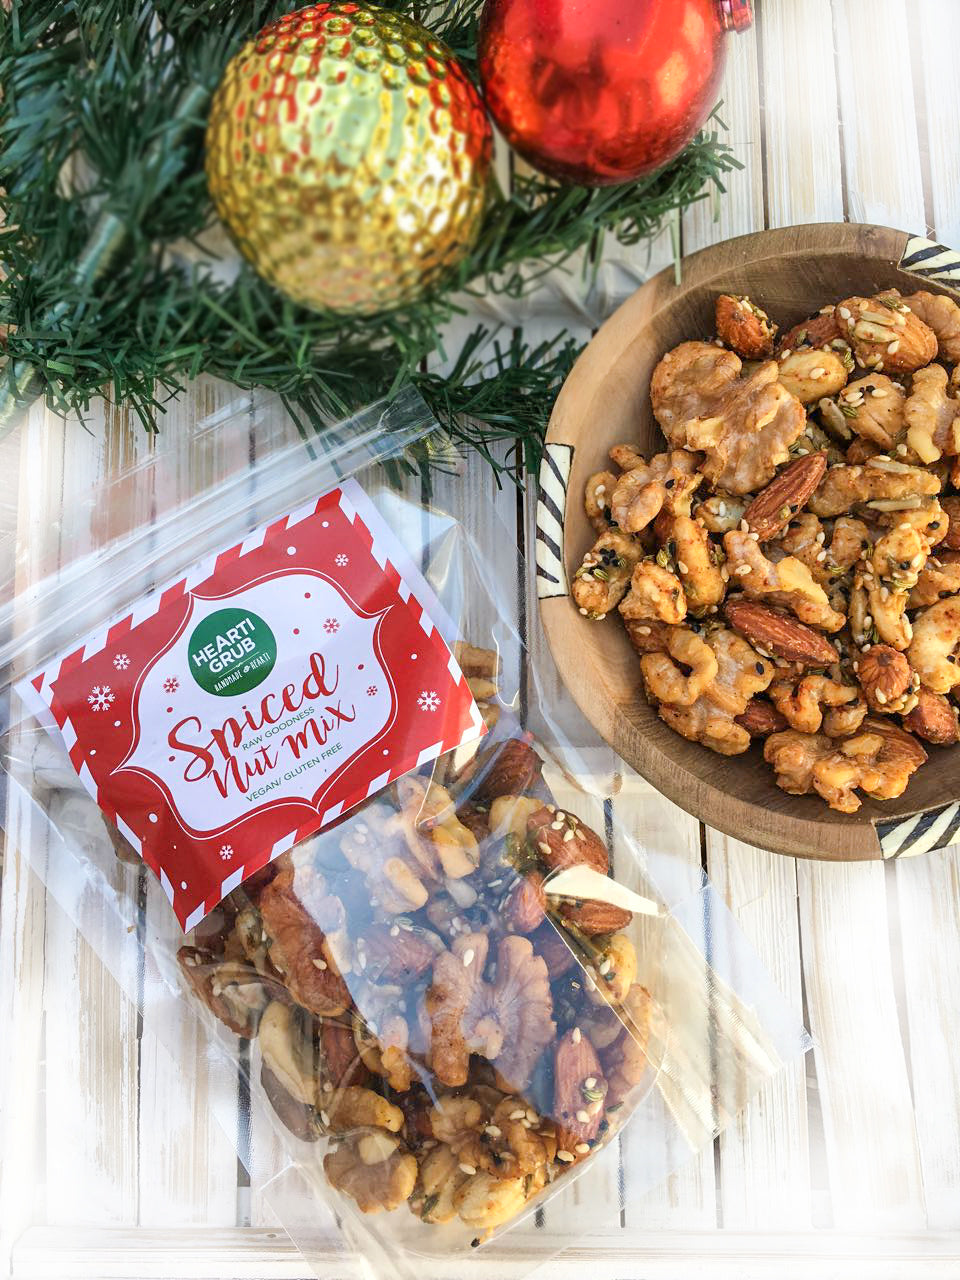 FESTIVE SPICED NUTS